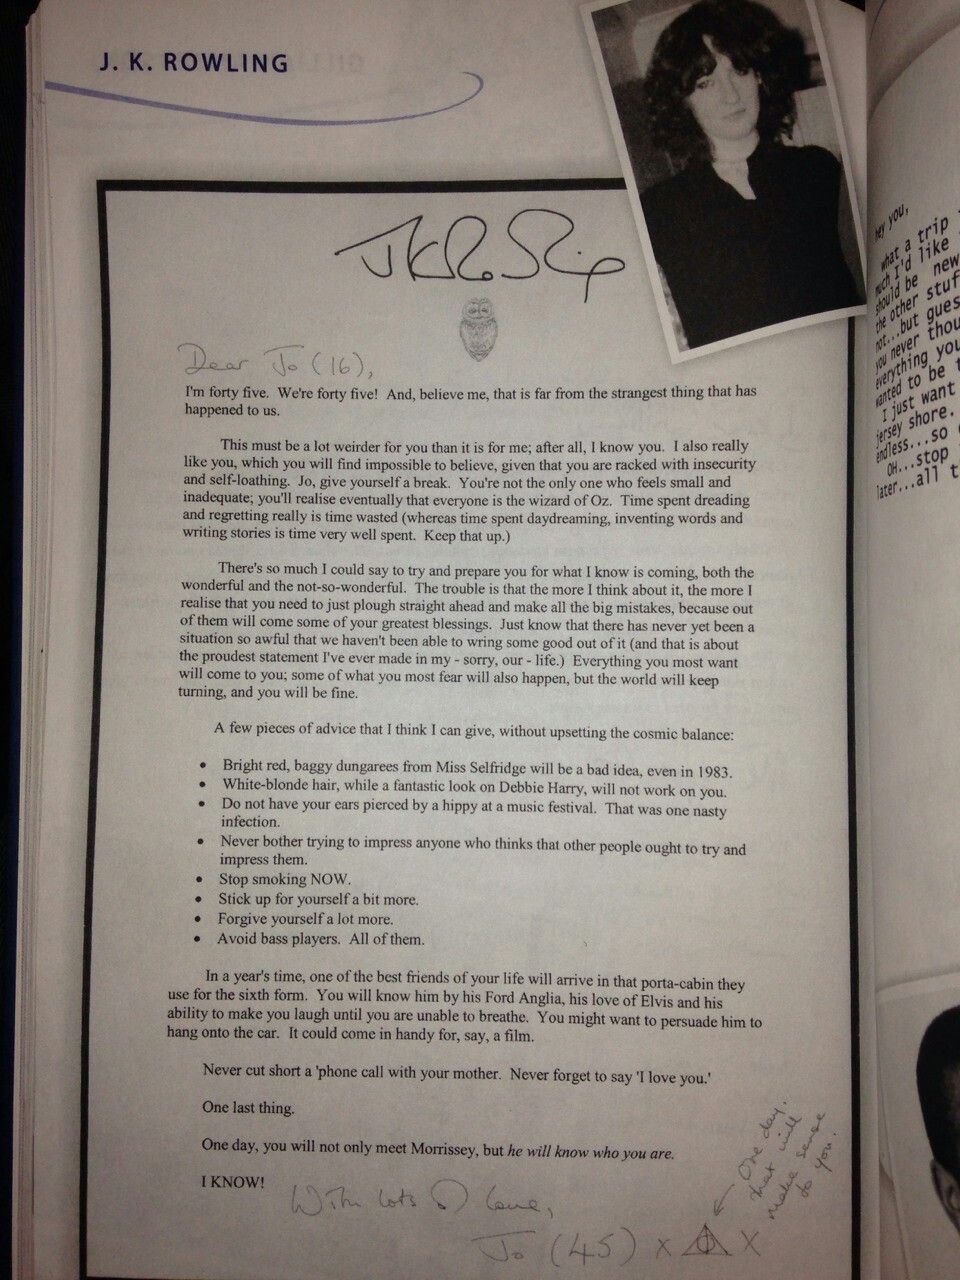 write a letter to jk rowling